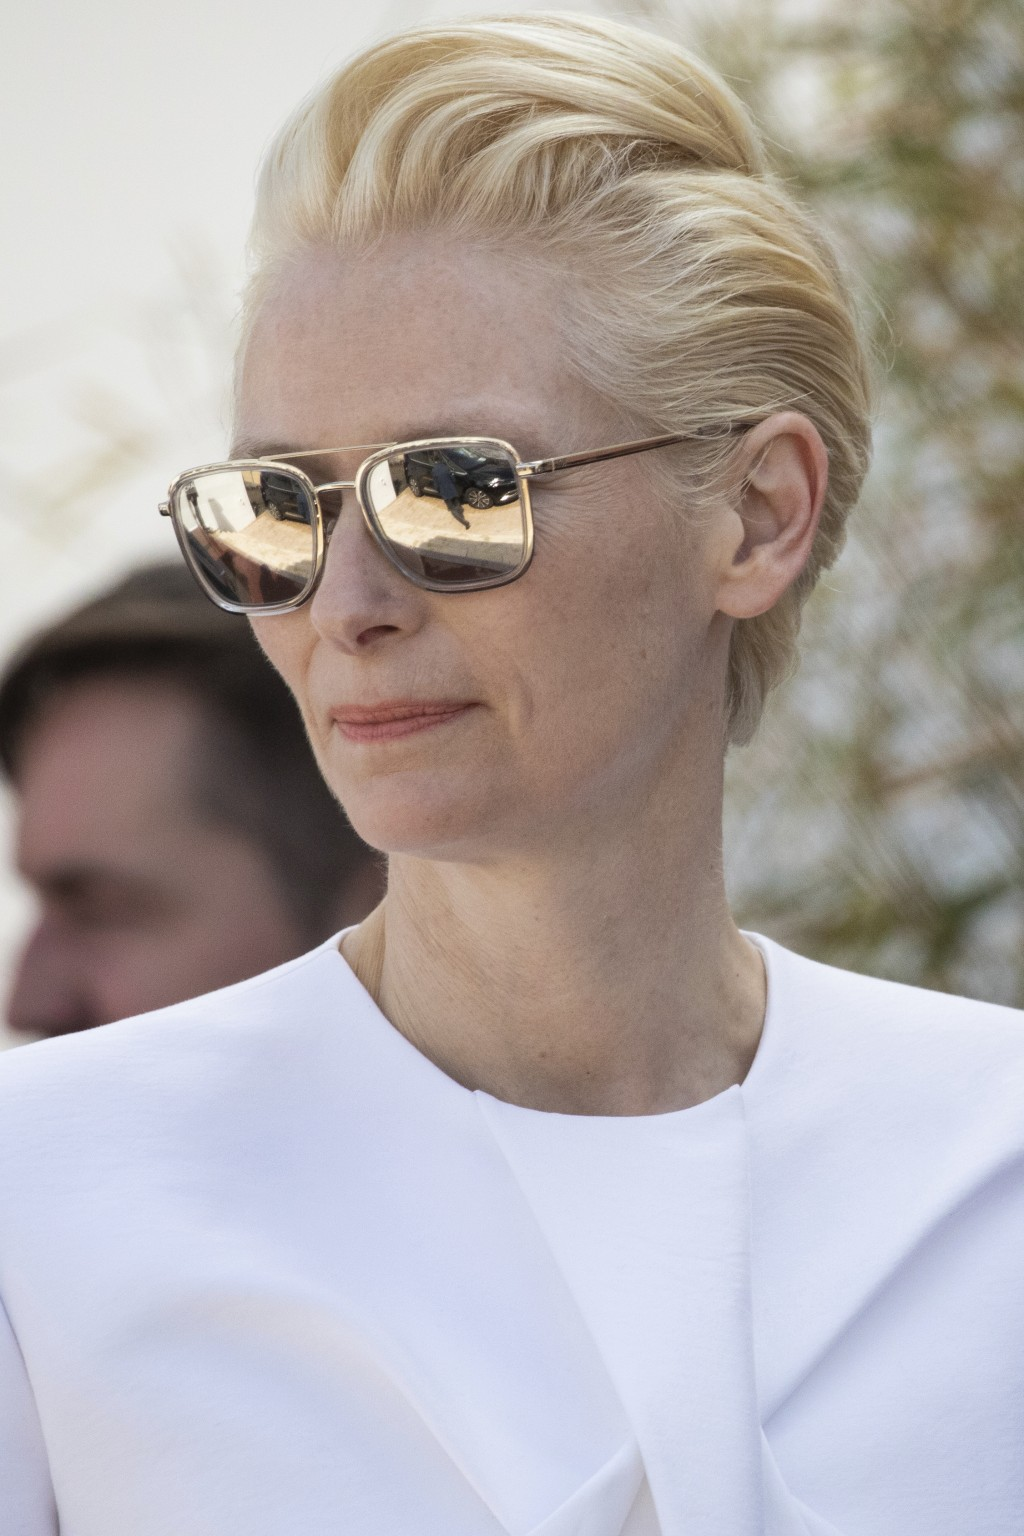 Actress Tilda Swinton poses for photographers upon arrival at the photo call for the film 'The Dead Don't Die' at the 72nd international film festival